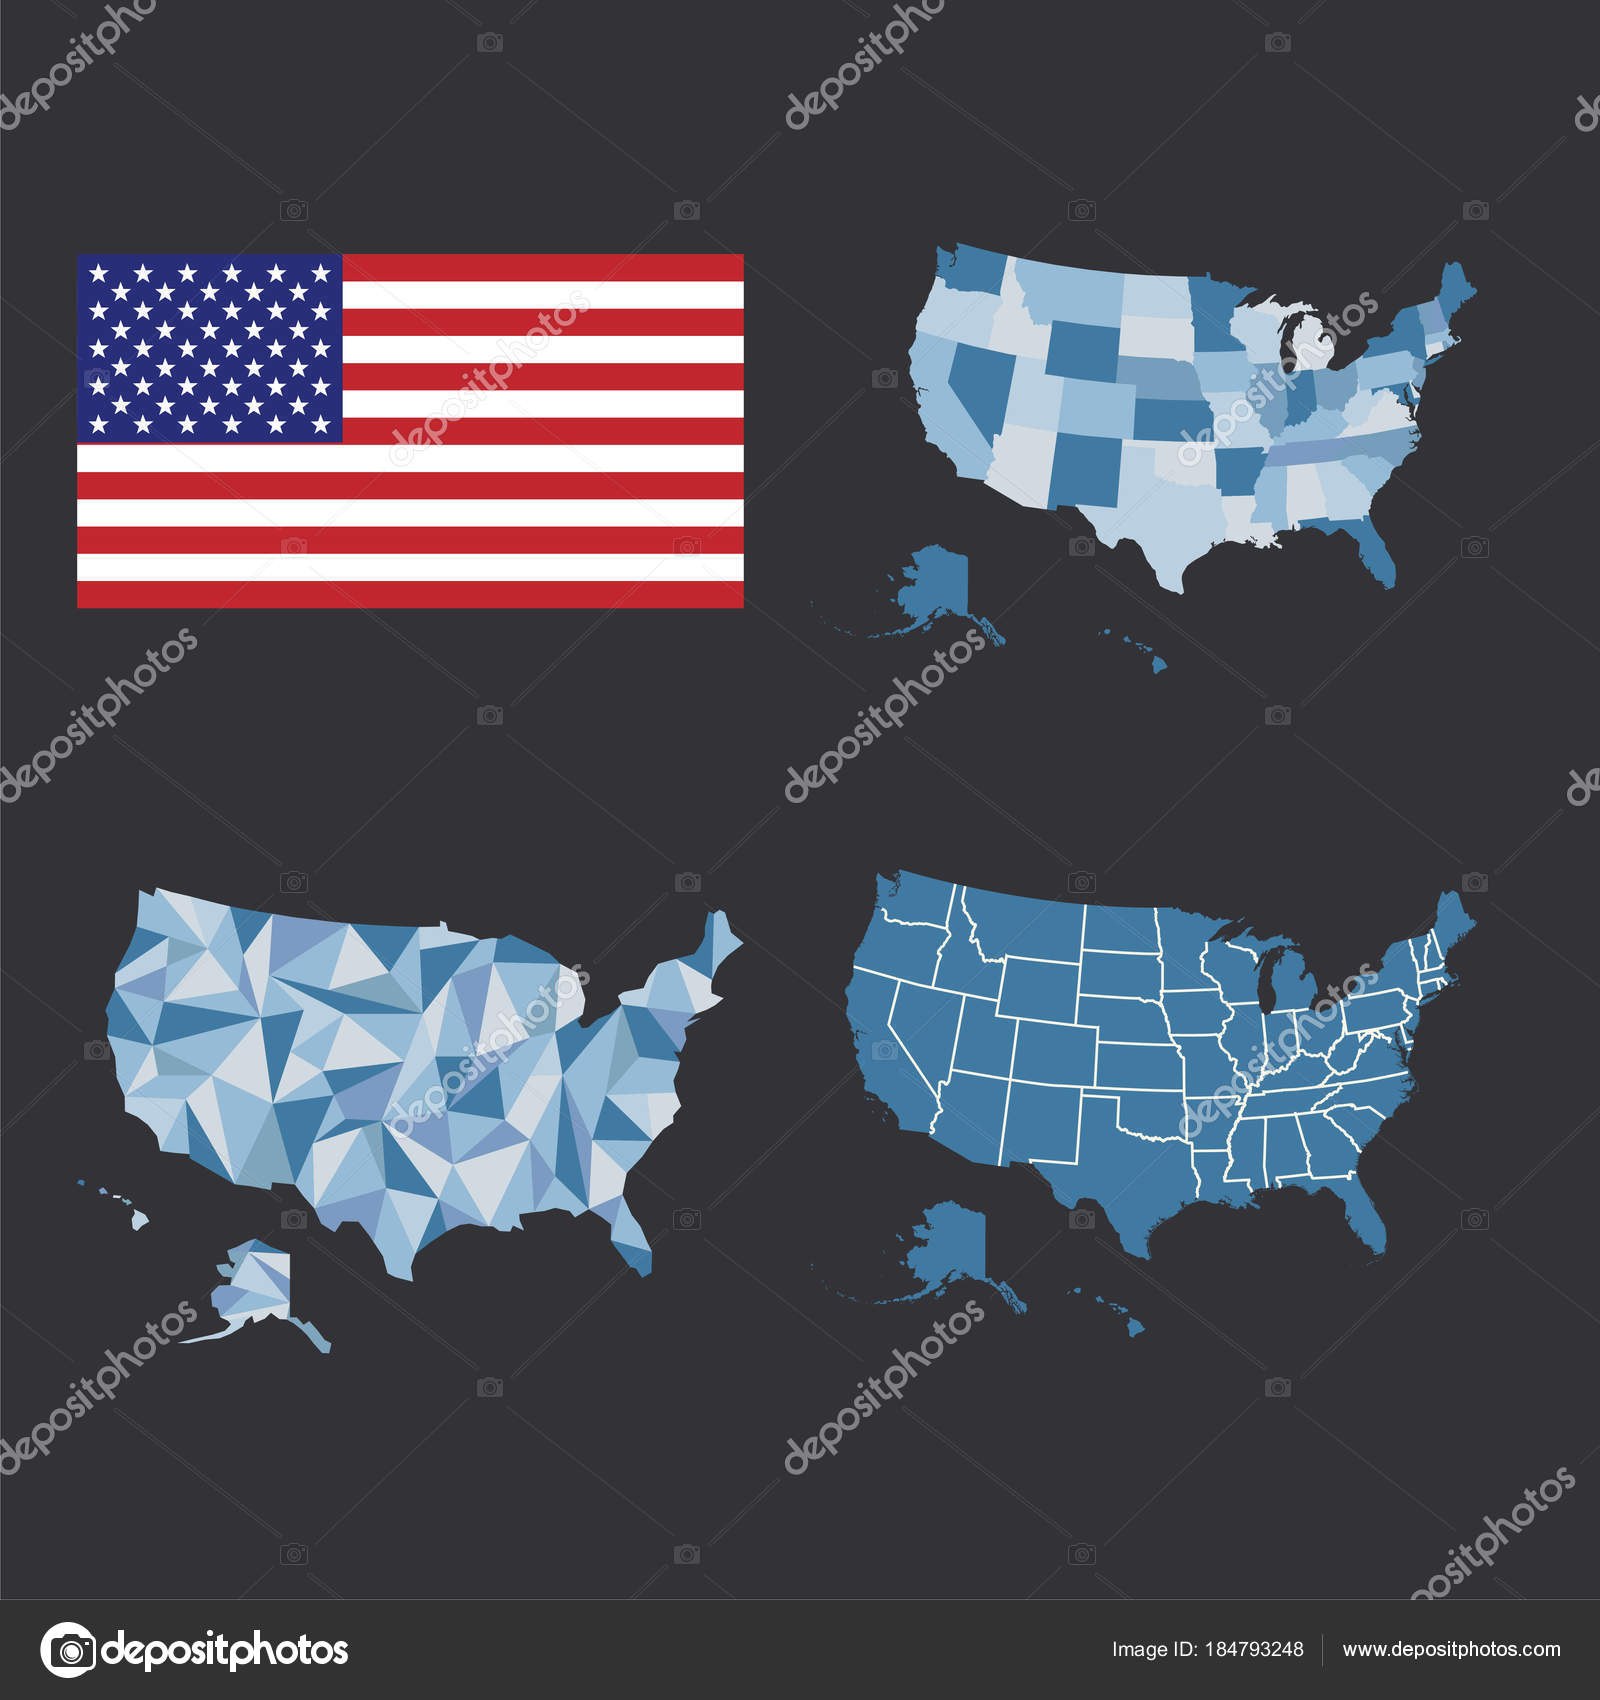 Outline map of the United States of America. States of the ...